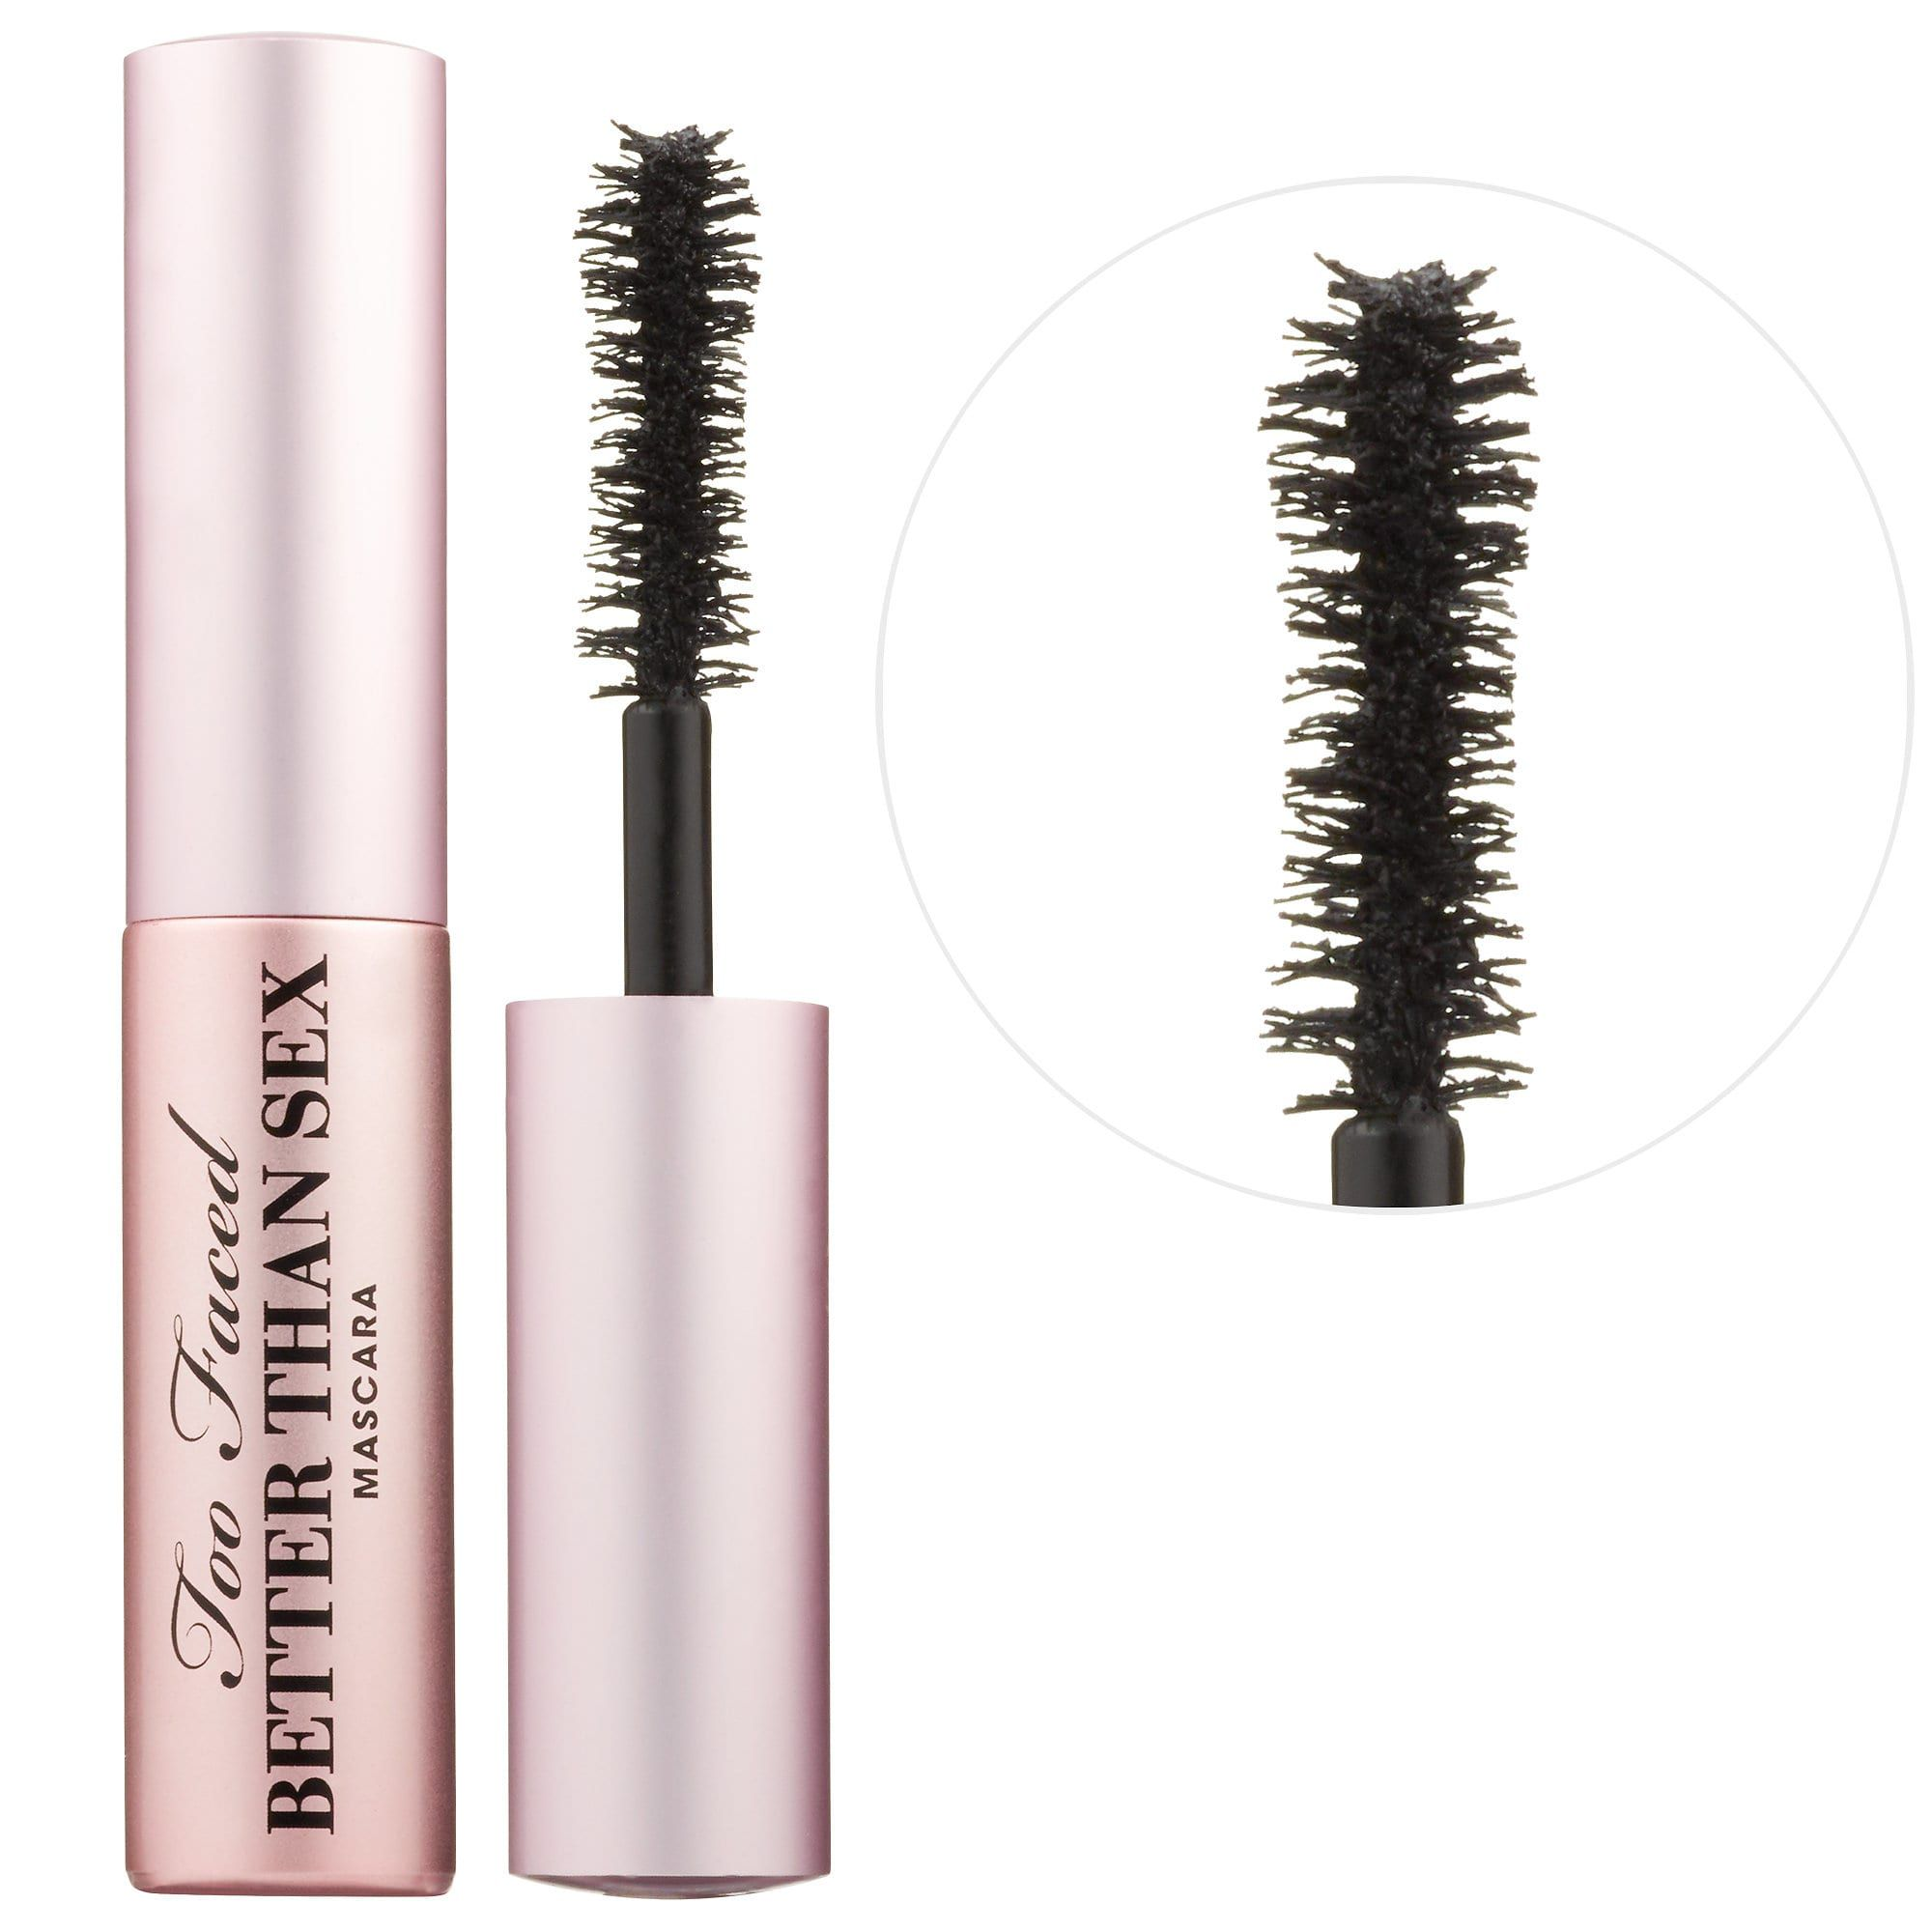 Must-Have Mascara Better Than Sex Mascara Too Faced sephora.com $12.00 SHOP IT